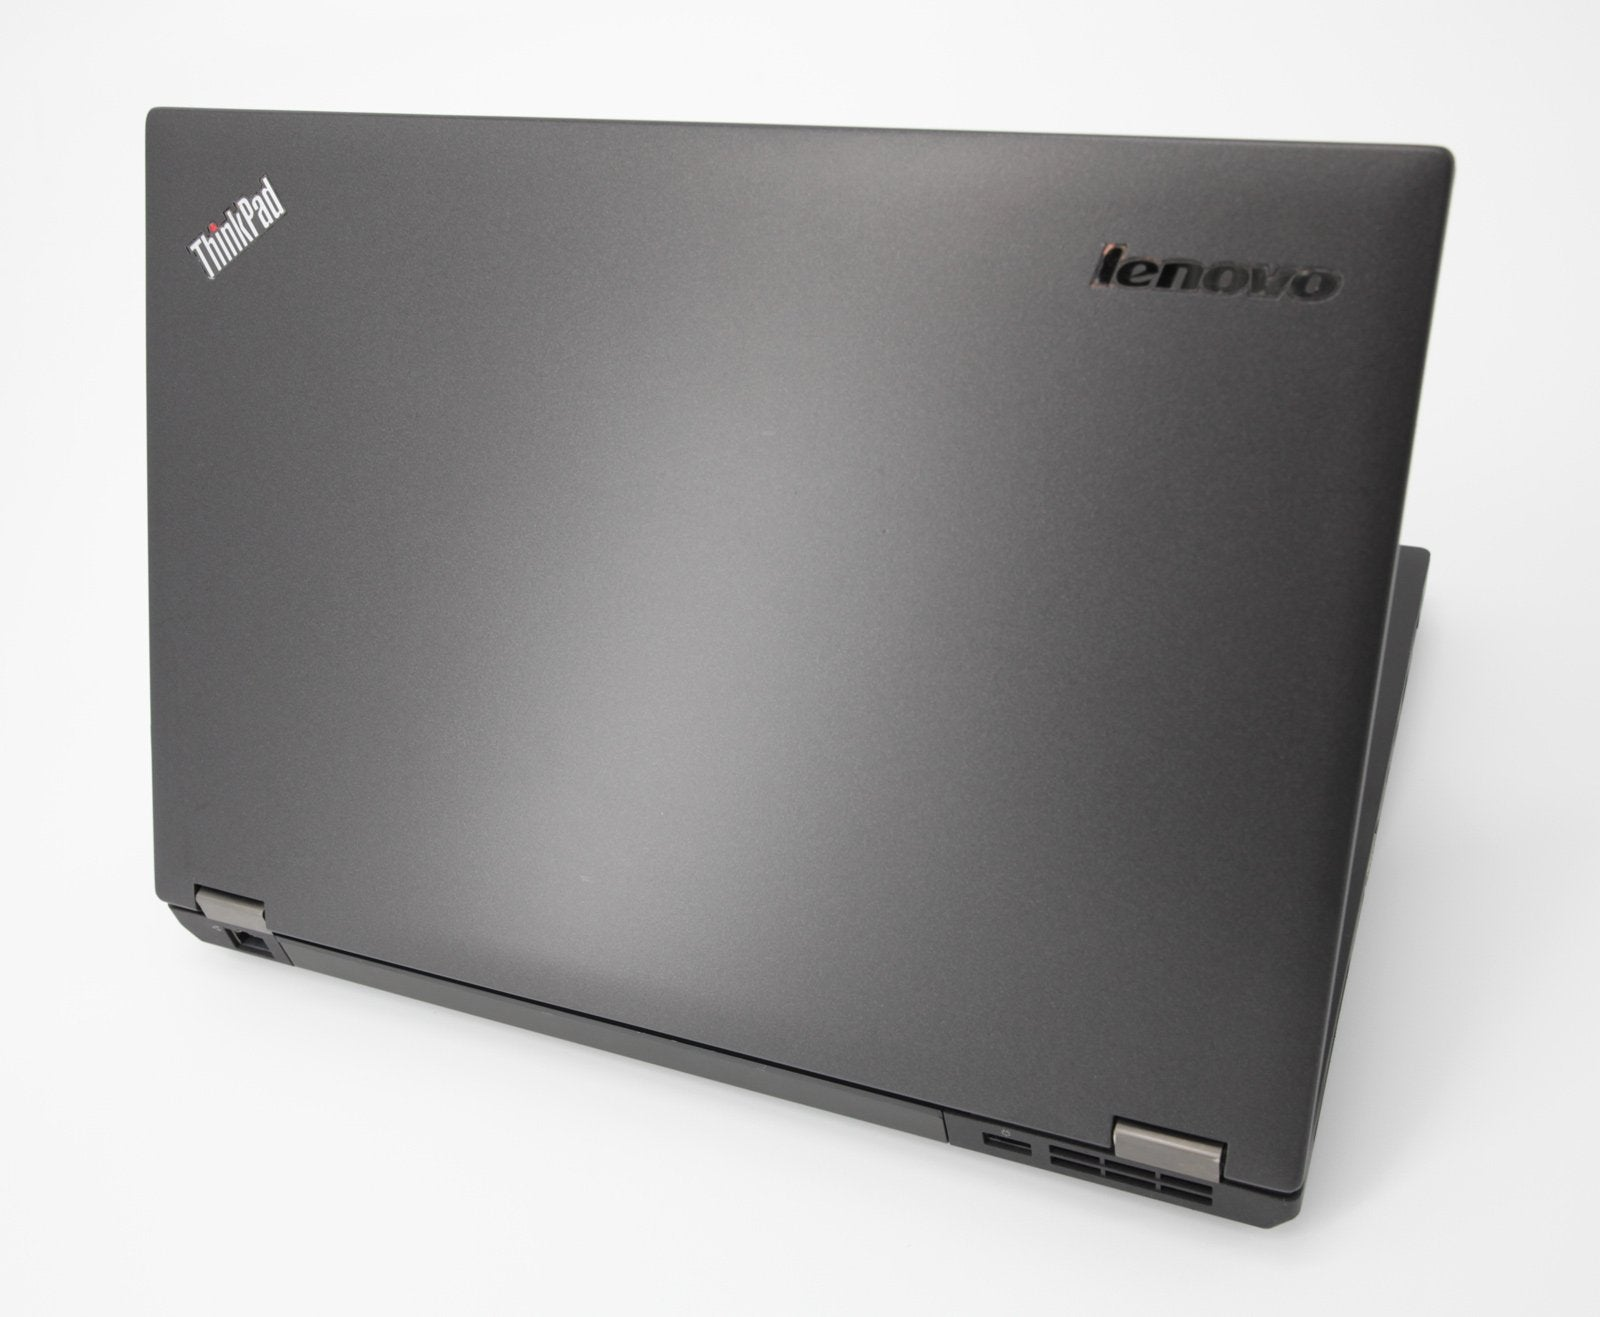 Lenovo T440P Laptop: Core i7-4600M 12GB RAM, 240GB SSD, Integrated Graphics, VAT - CruiseTech